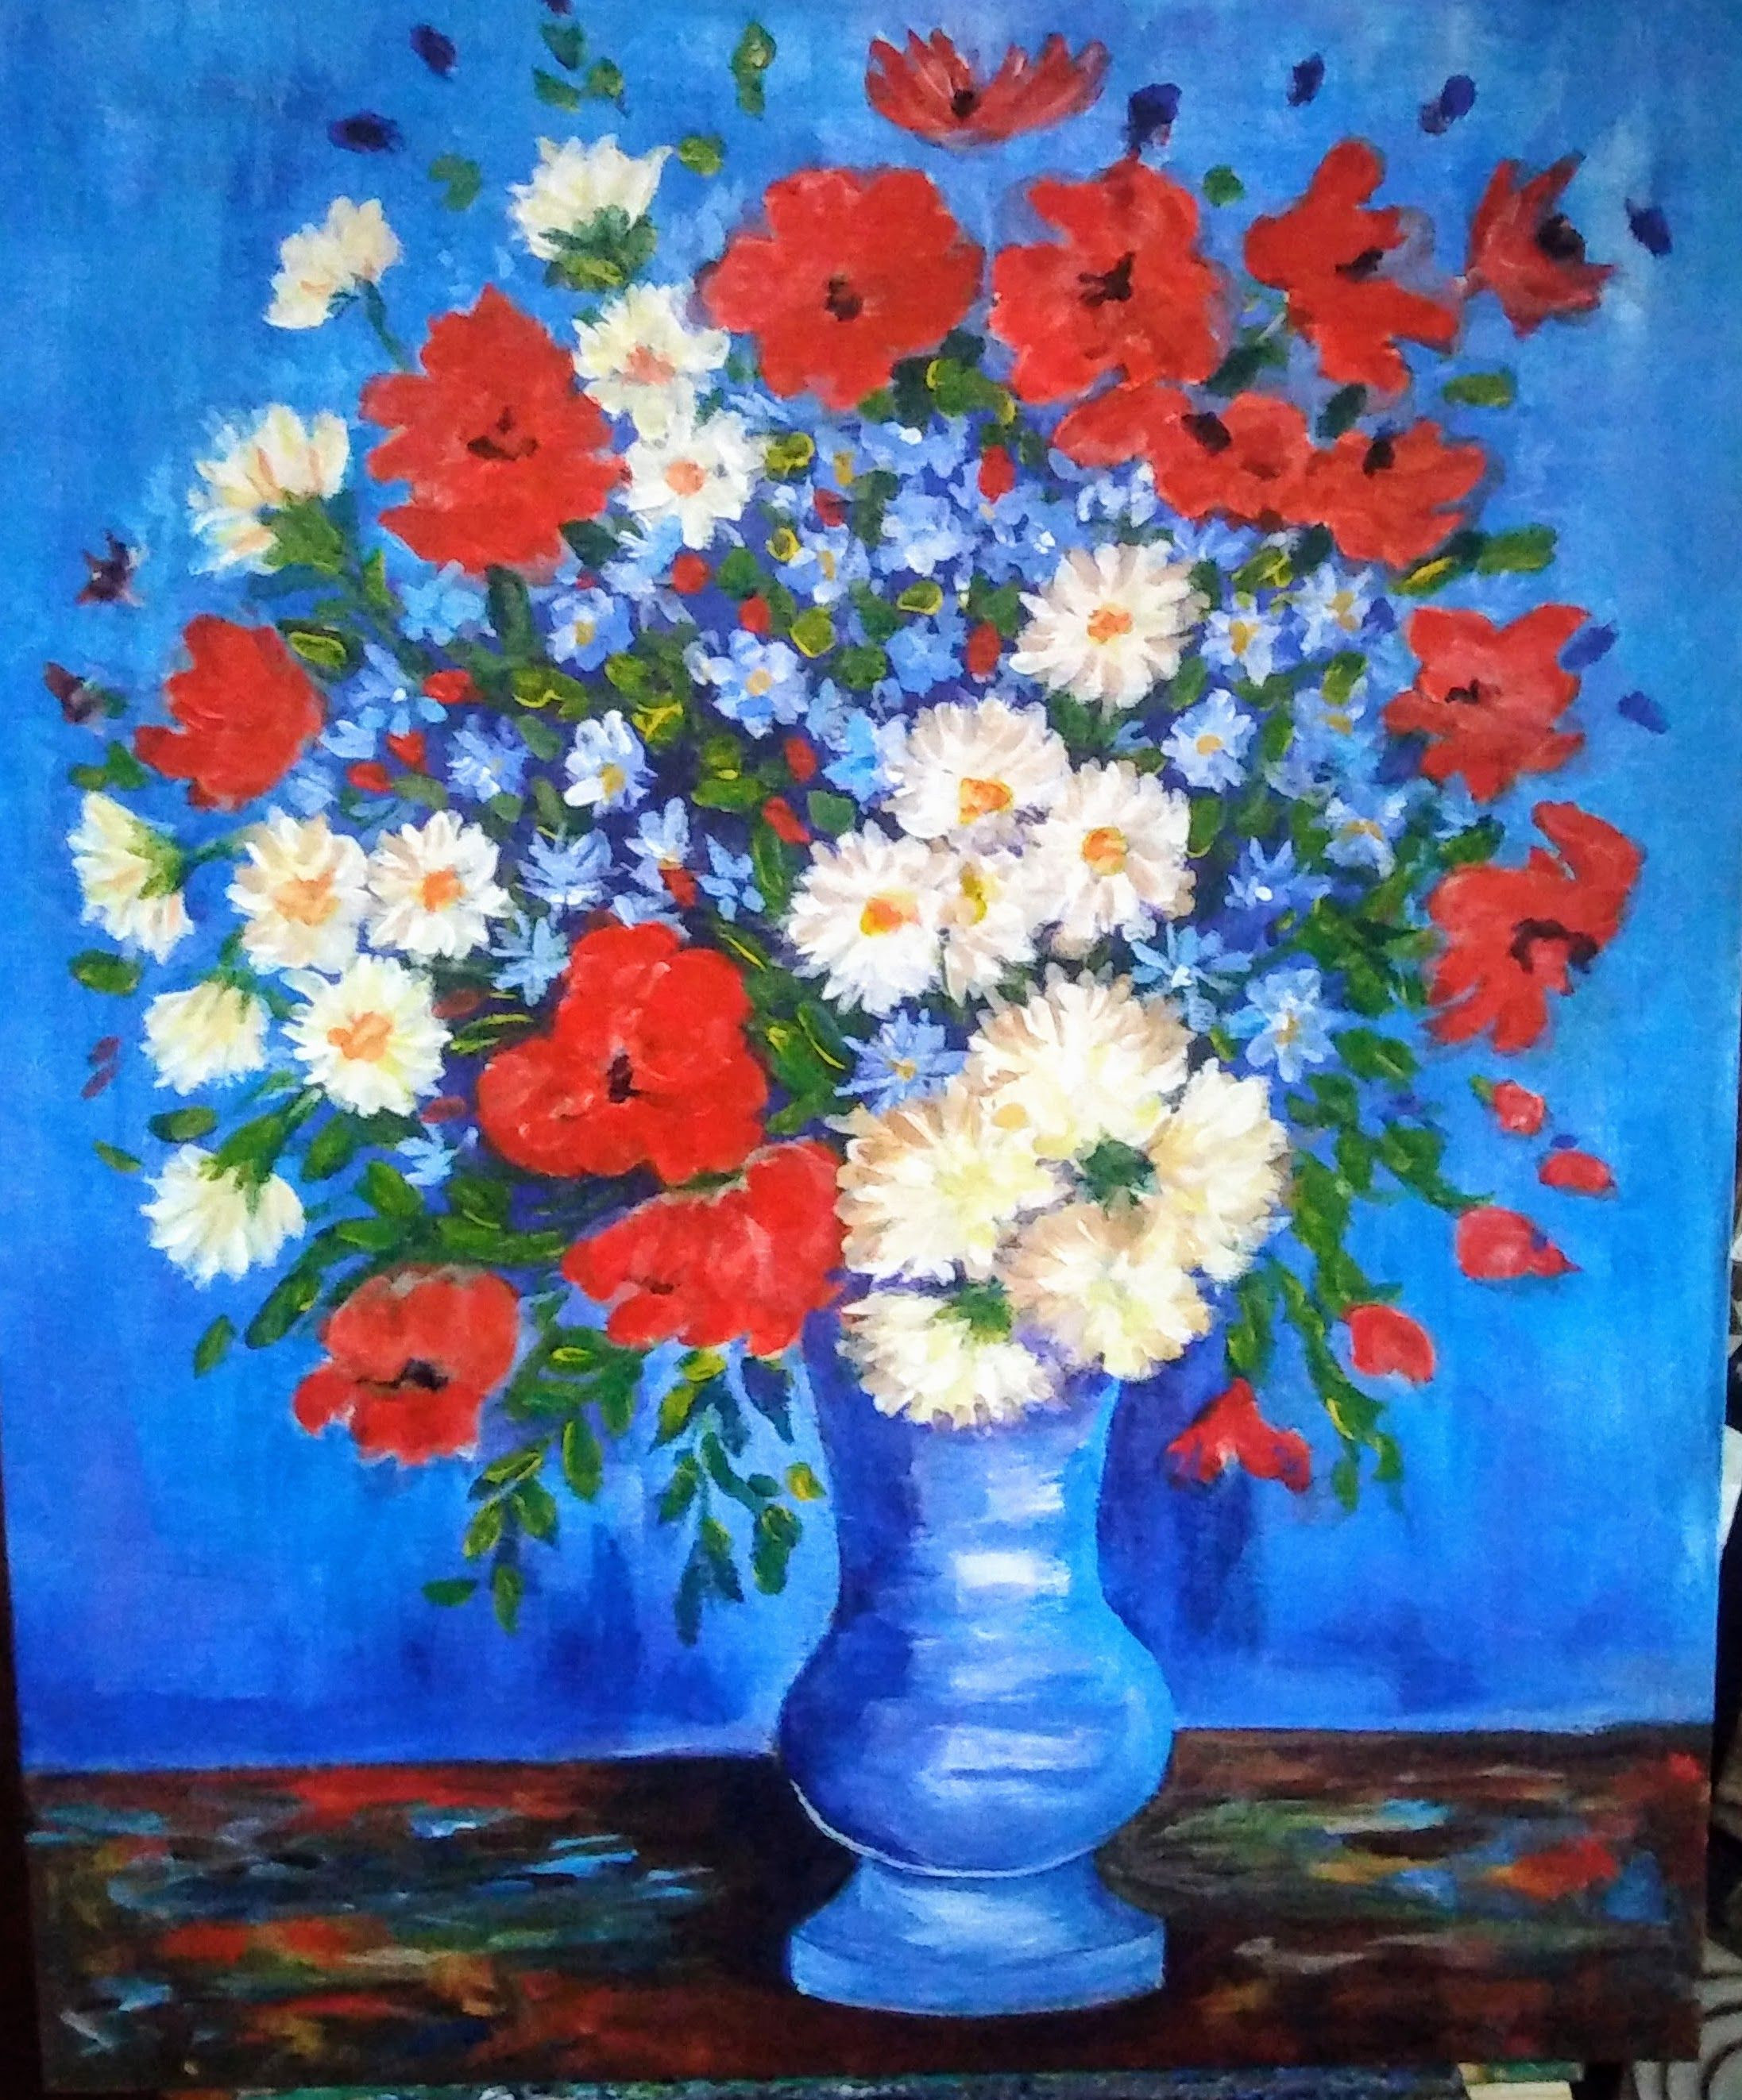 vase with flowers vincent van gogh of van gogh corn flowers was painted by christine gerst from one of pertaining to van gogh corn flowers was painted by christine gerst from one of over 270 lessons we have on our acrylic academy website www gingercooklive gallery lovely